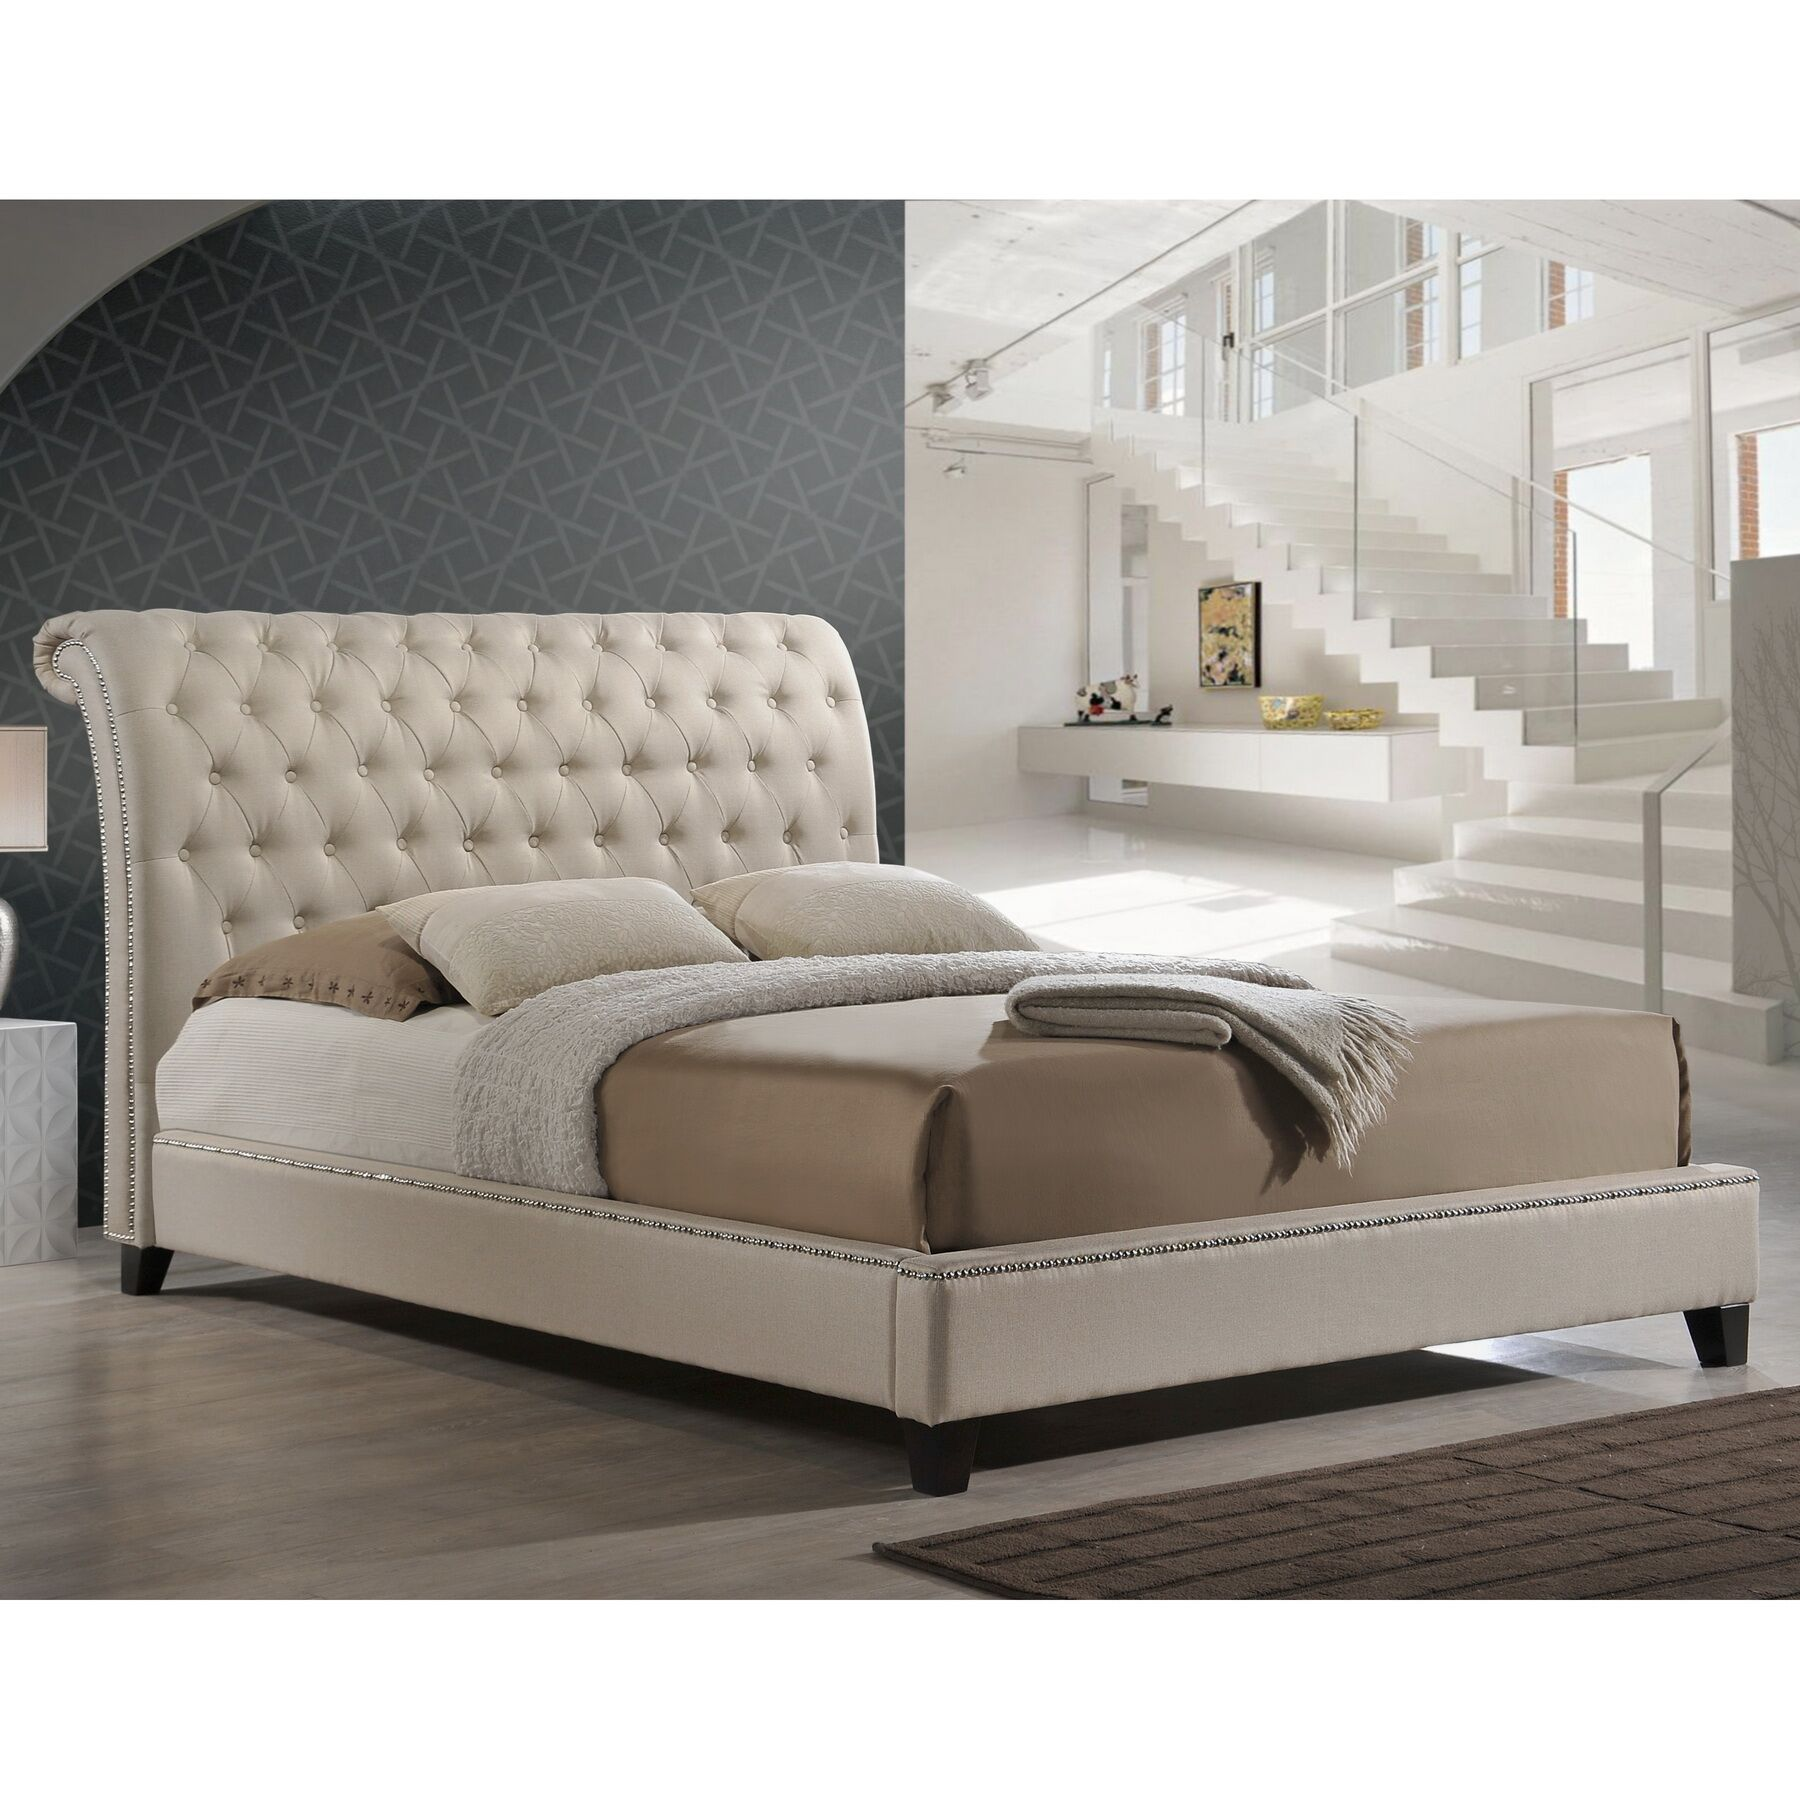 Rorie Upholstered Platform Bed Size: King, Color: Light Beige